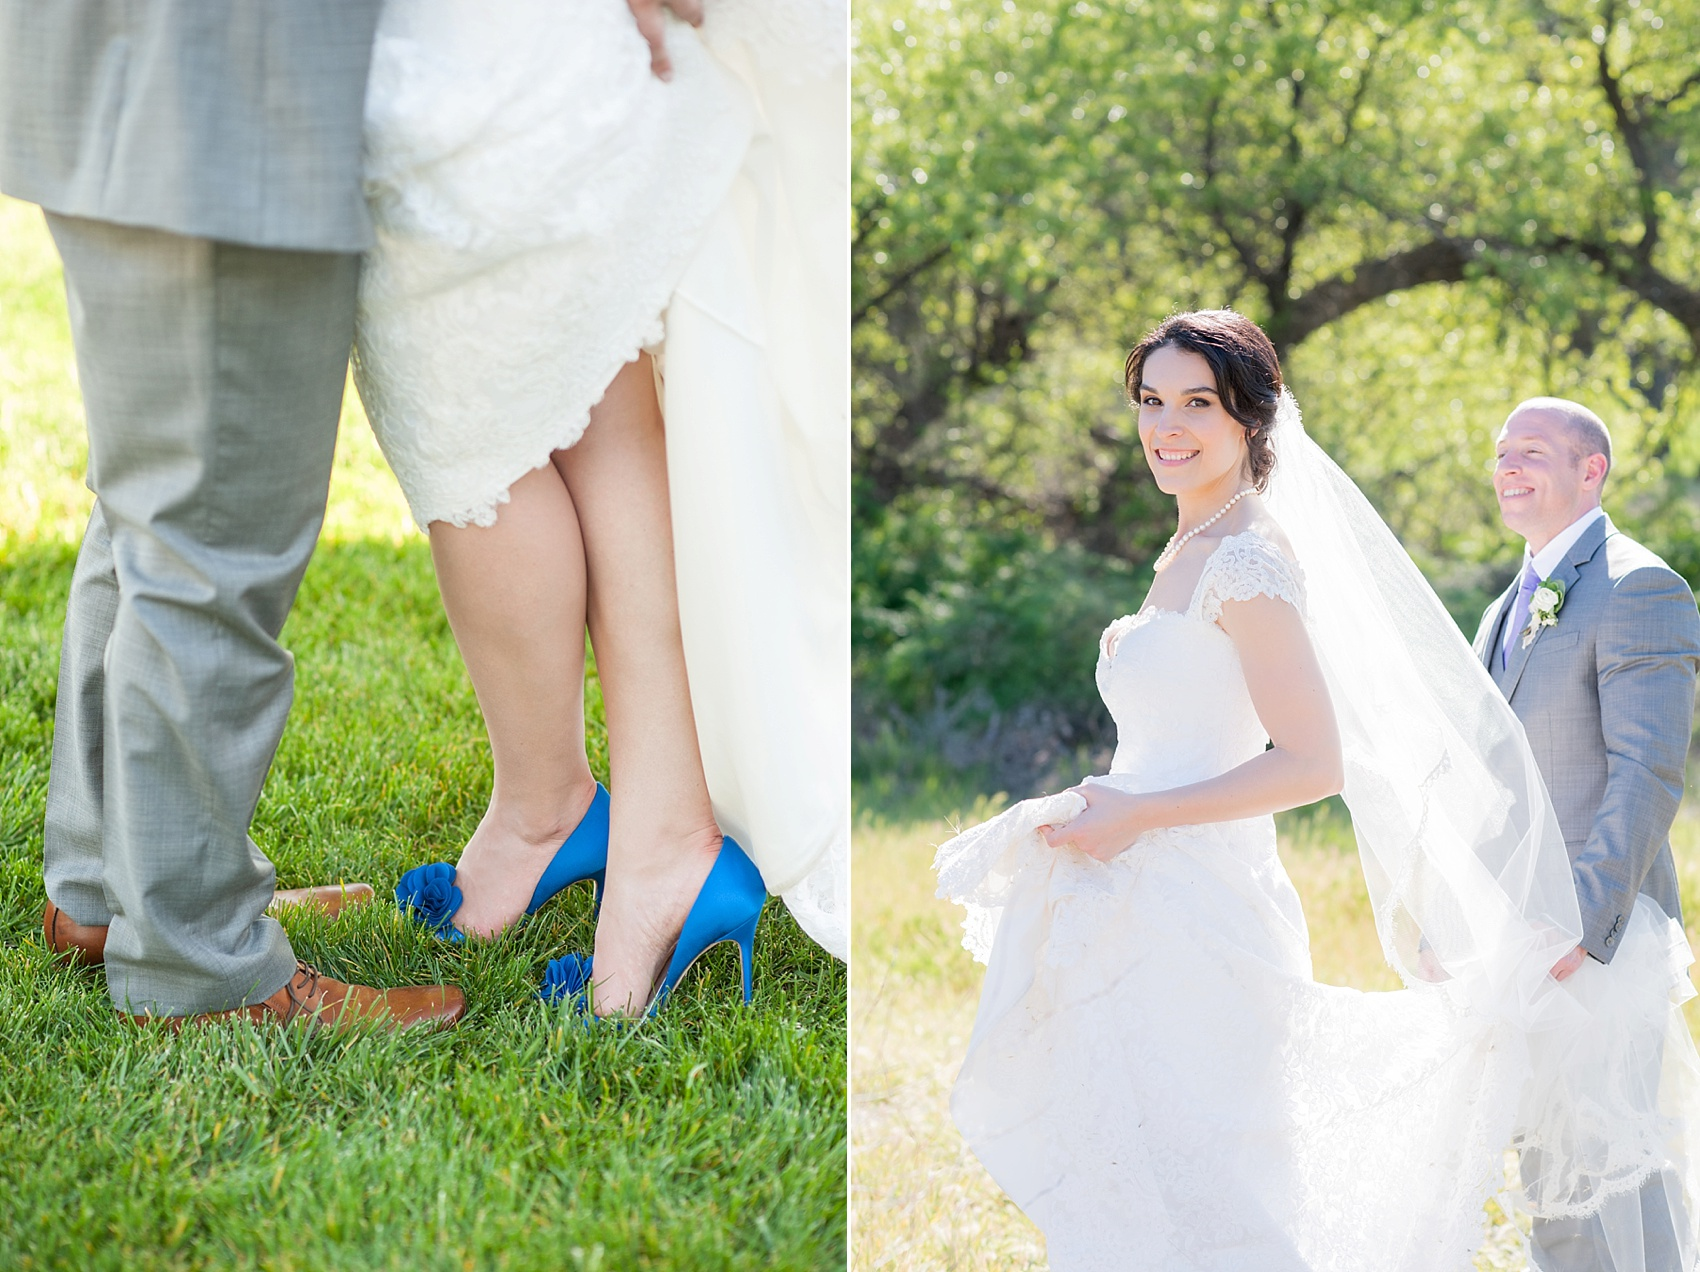 Vineyard elopement, bride and groom photos, with Mikkel Paige, destination wedding photographer. Held at HammerSky Vineyard, south of San Francisco. Cobalt blue Badgley Mischka bridal shoes.